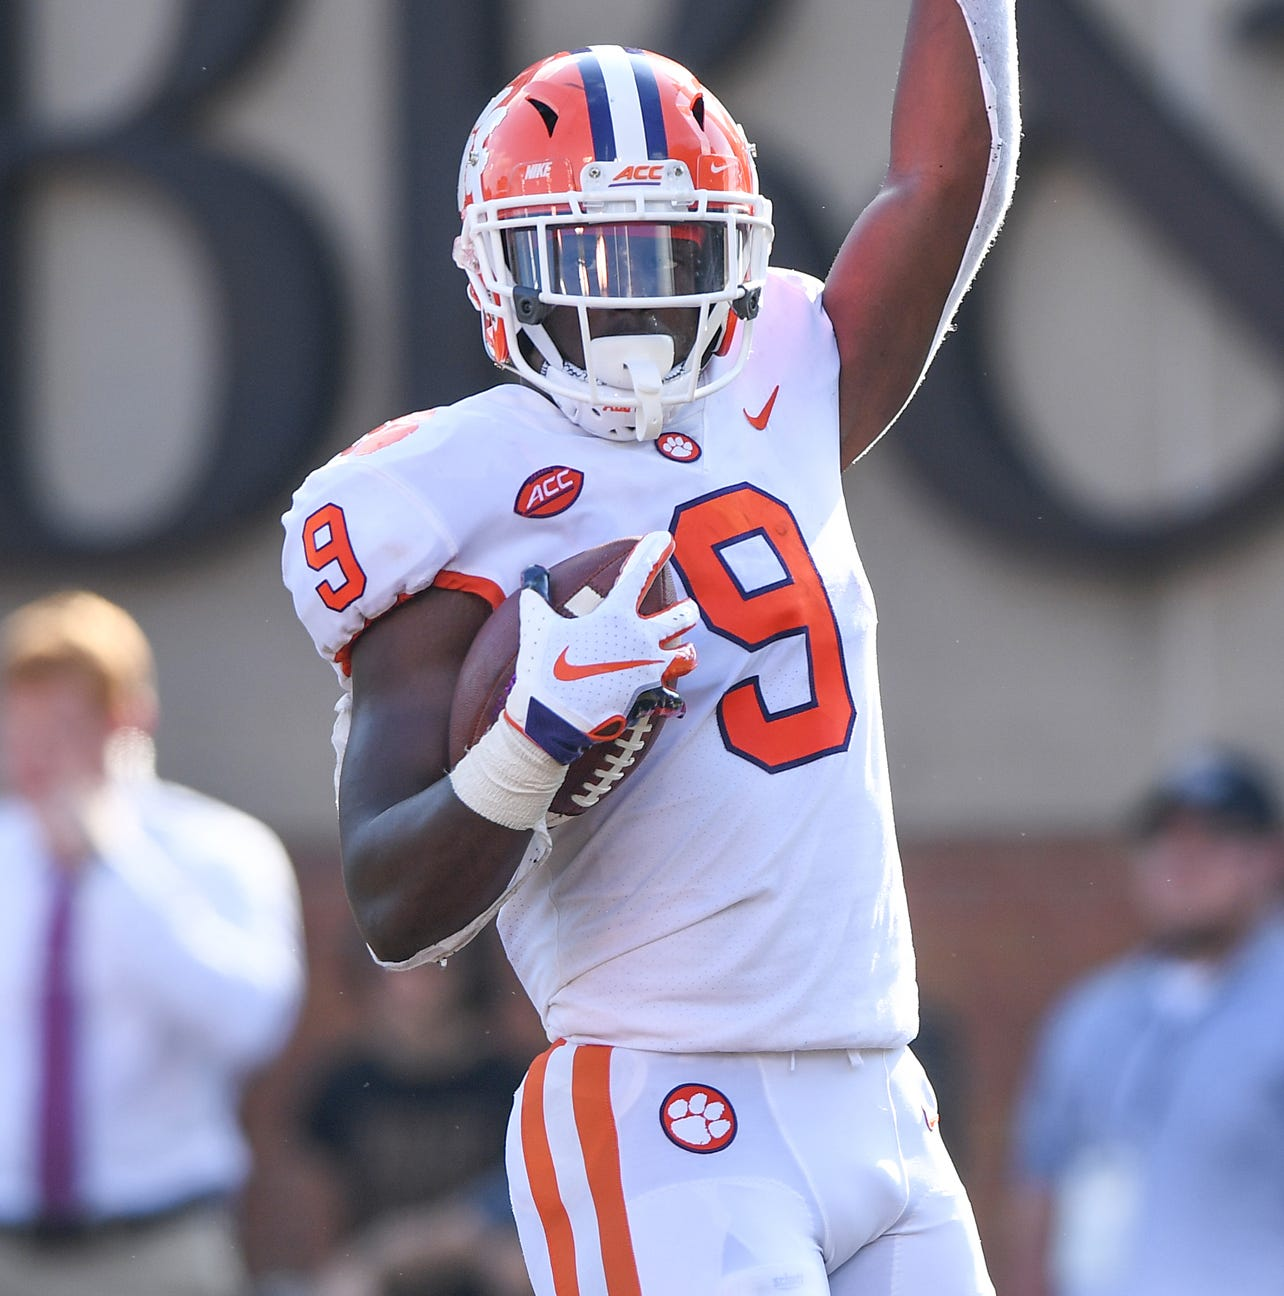 Running wild: Travis Etienne has Clemson rushing attack on record pace